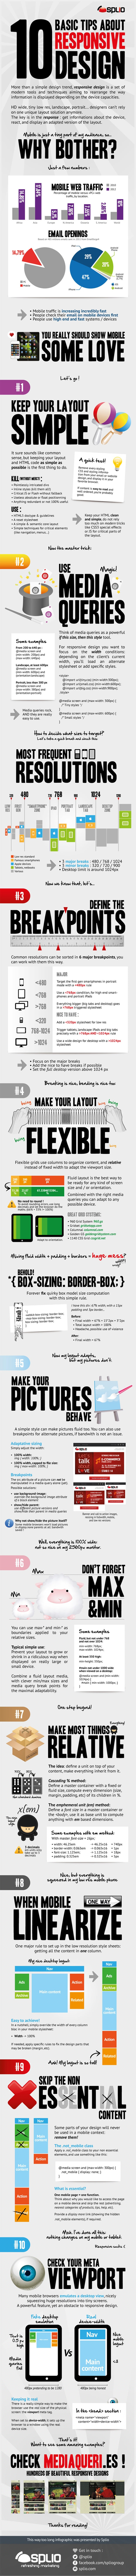 tips-responsive-website-design-infographic